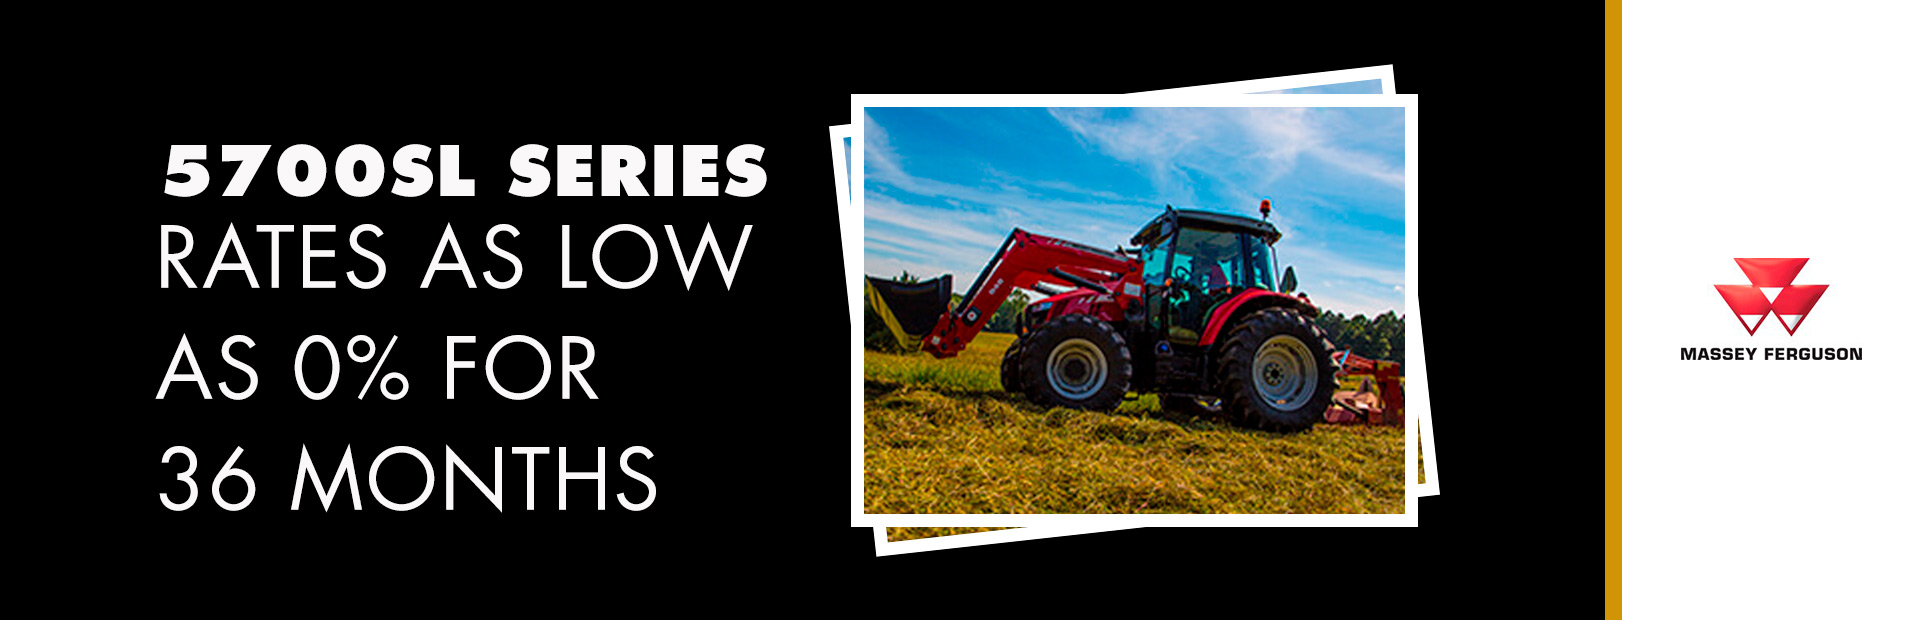 Massey Ferguson: 5700SL Series - Rates as low as 0% for 36 Months